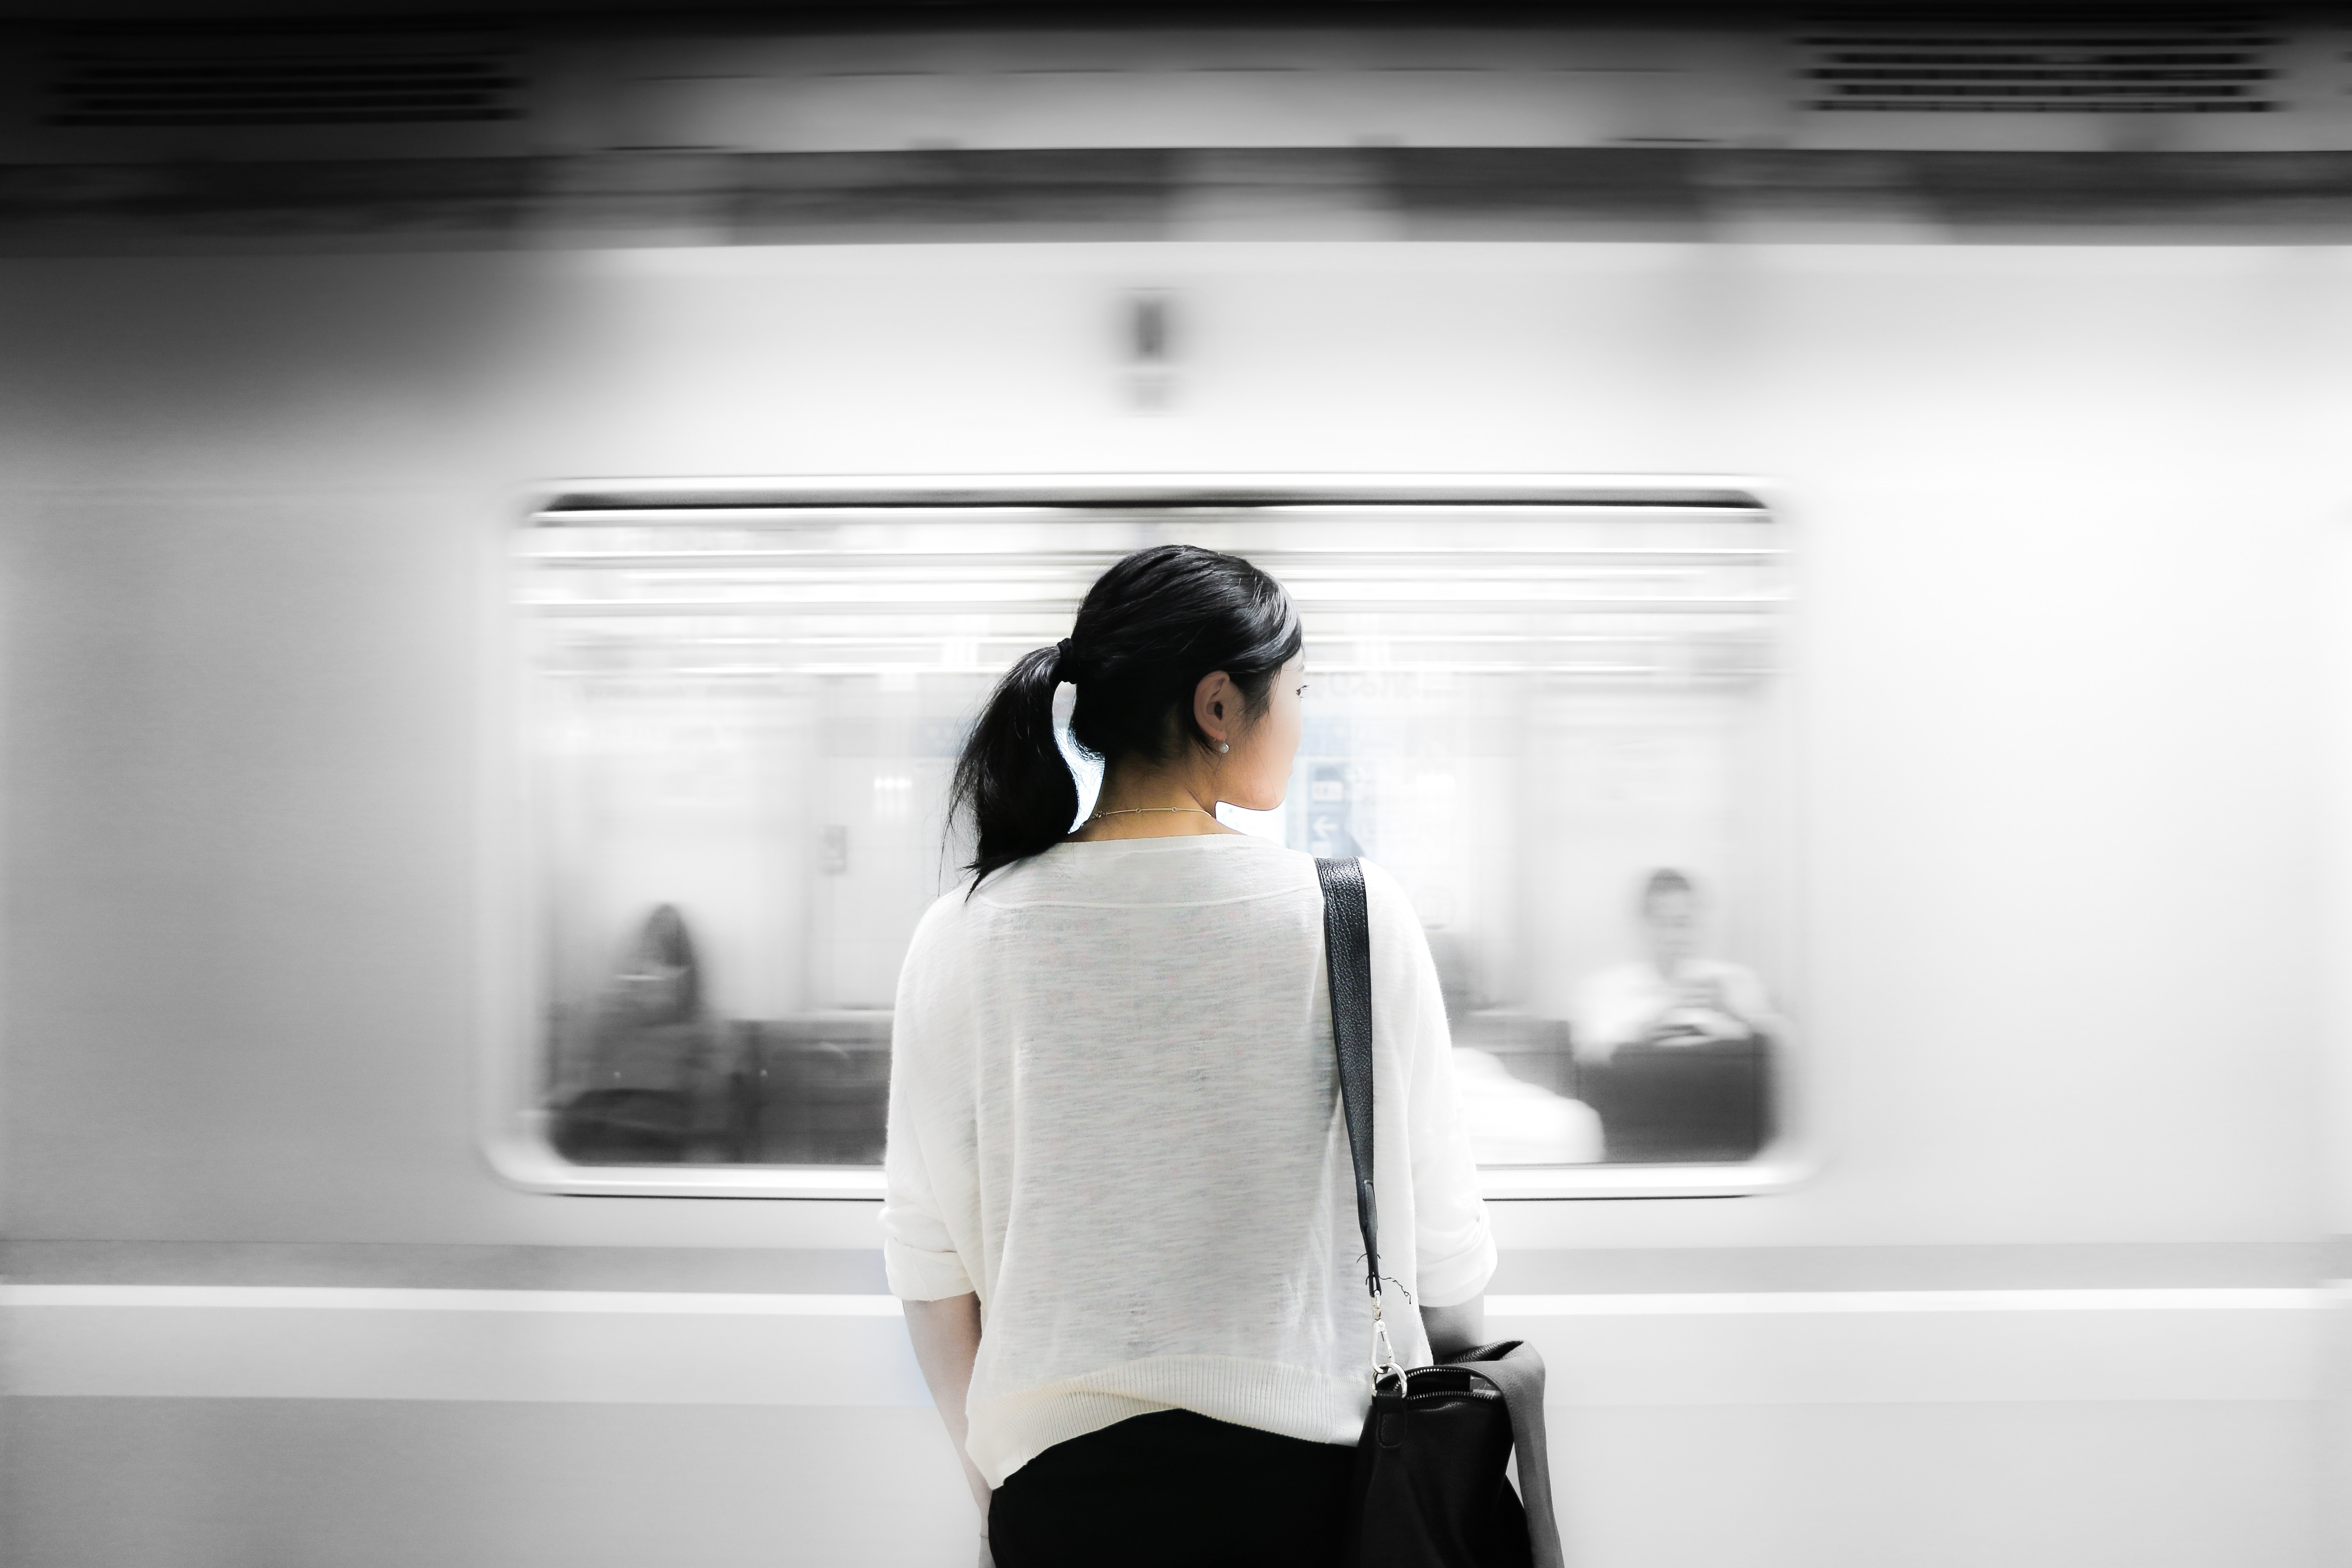 Image of a woman at the subway station